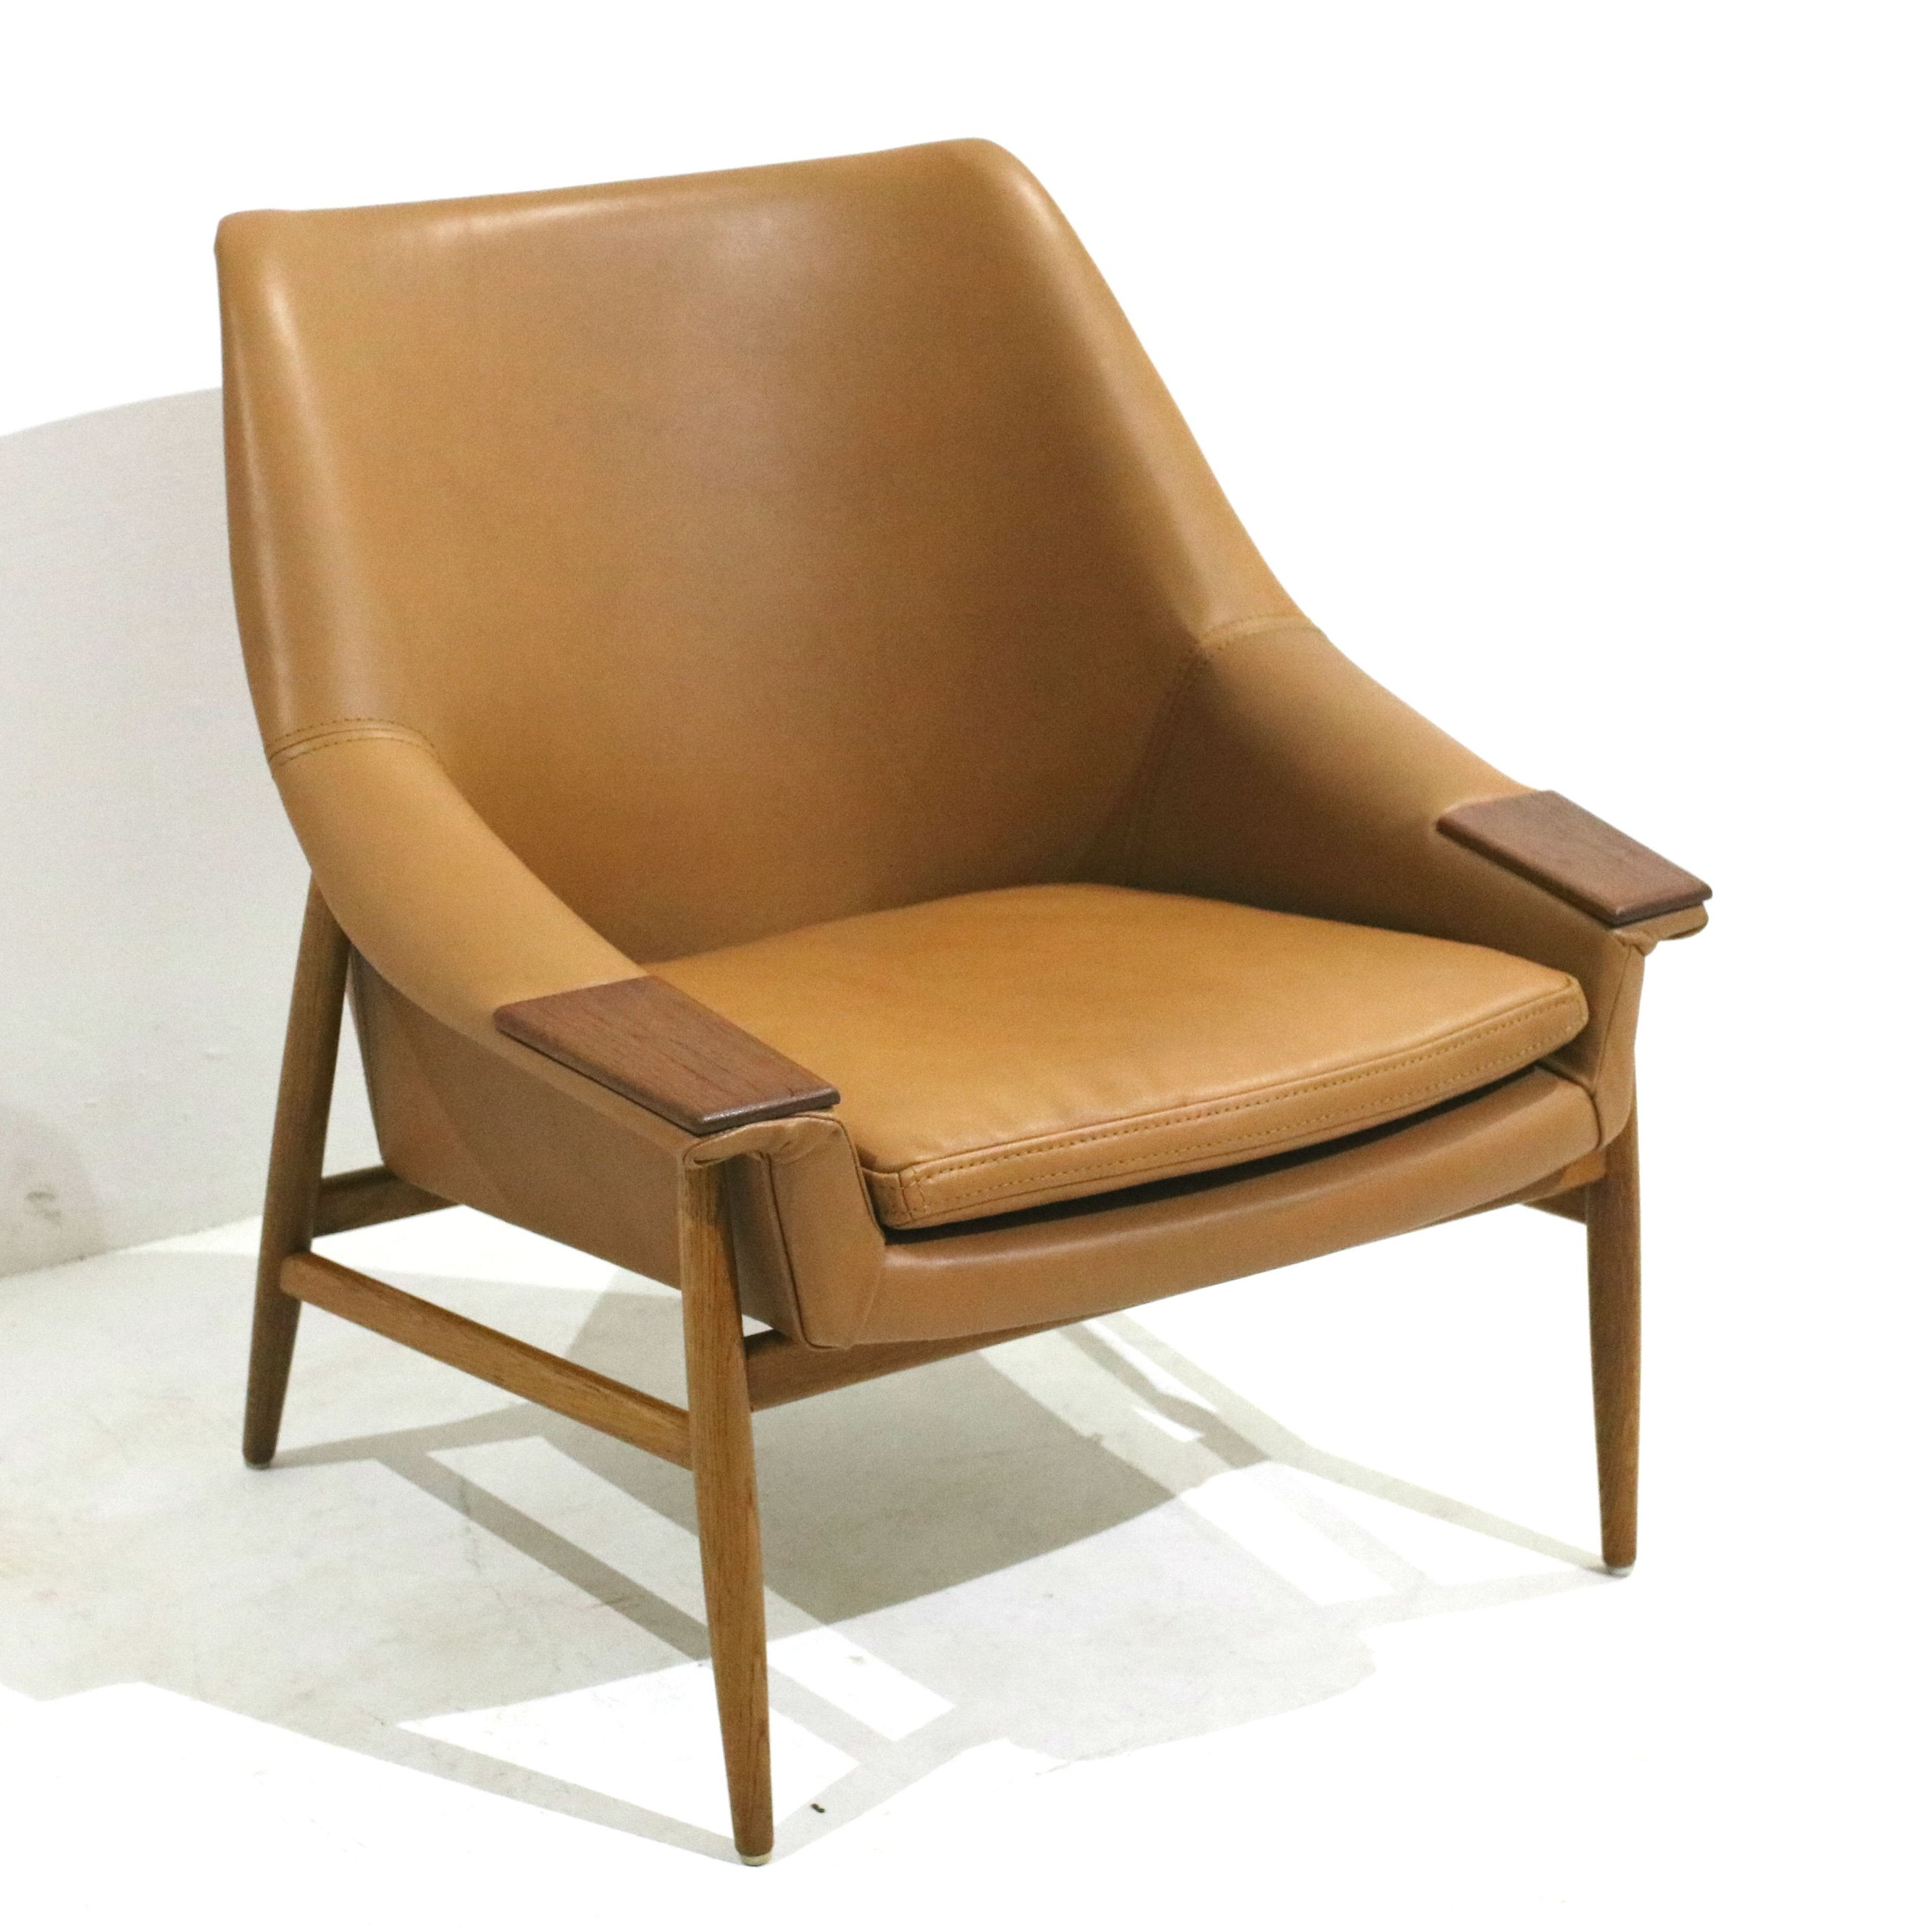 Grace-61 Armchair from Ikea, 1960s | #85690